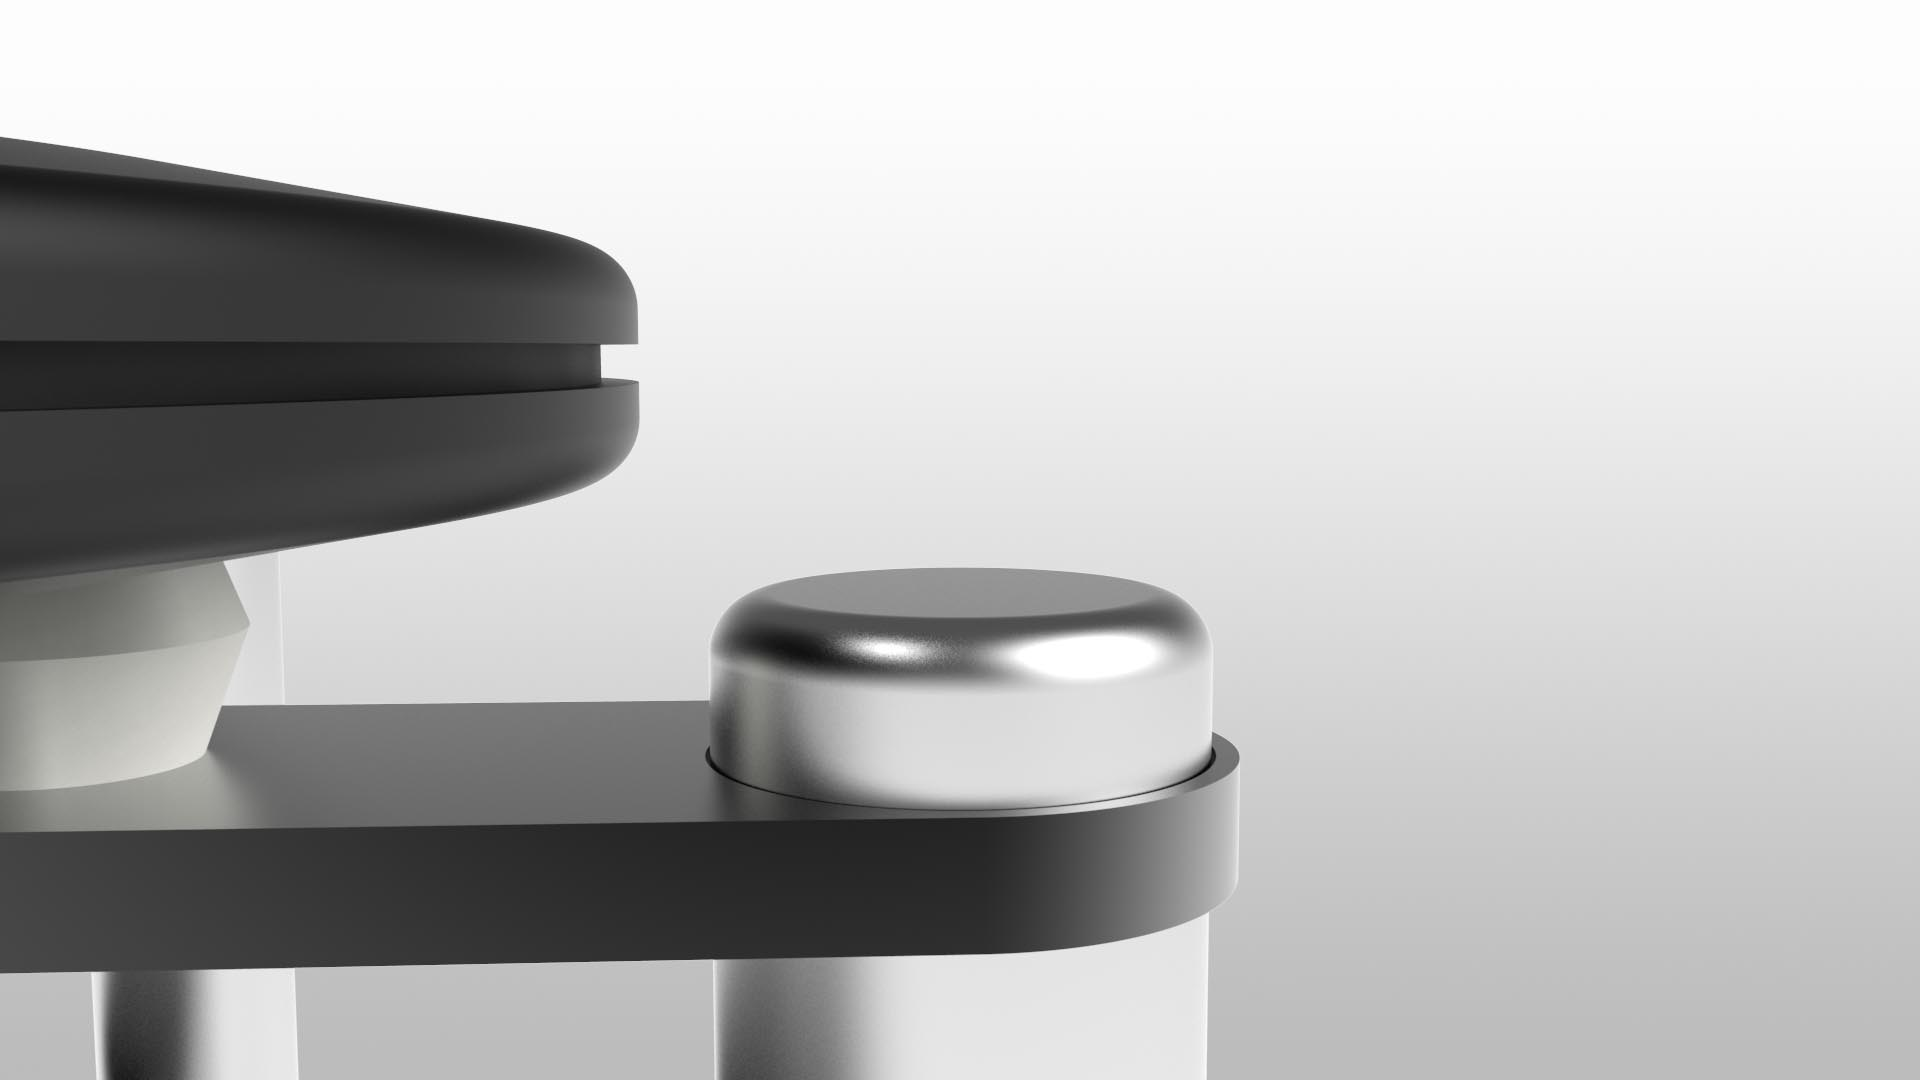 Constrained Layered Damping  The platform has a further level of isolation with an extruded polymer mat sandwiched between precision routed wooden composite layers.